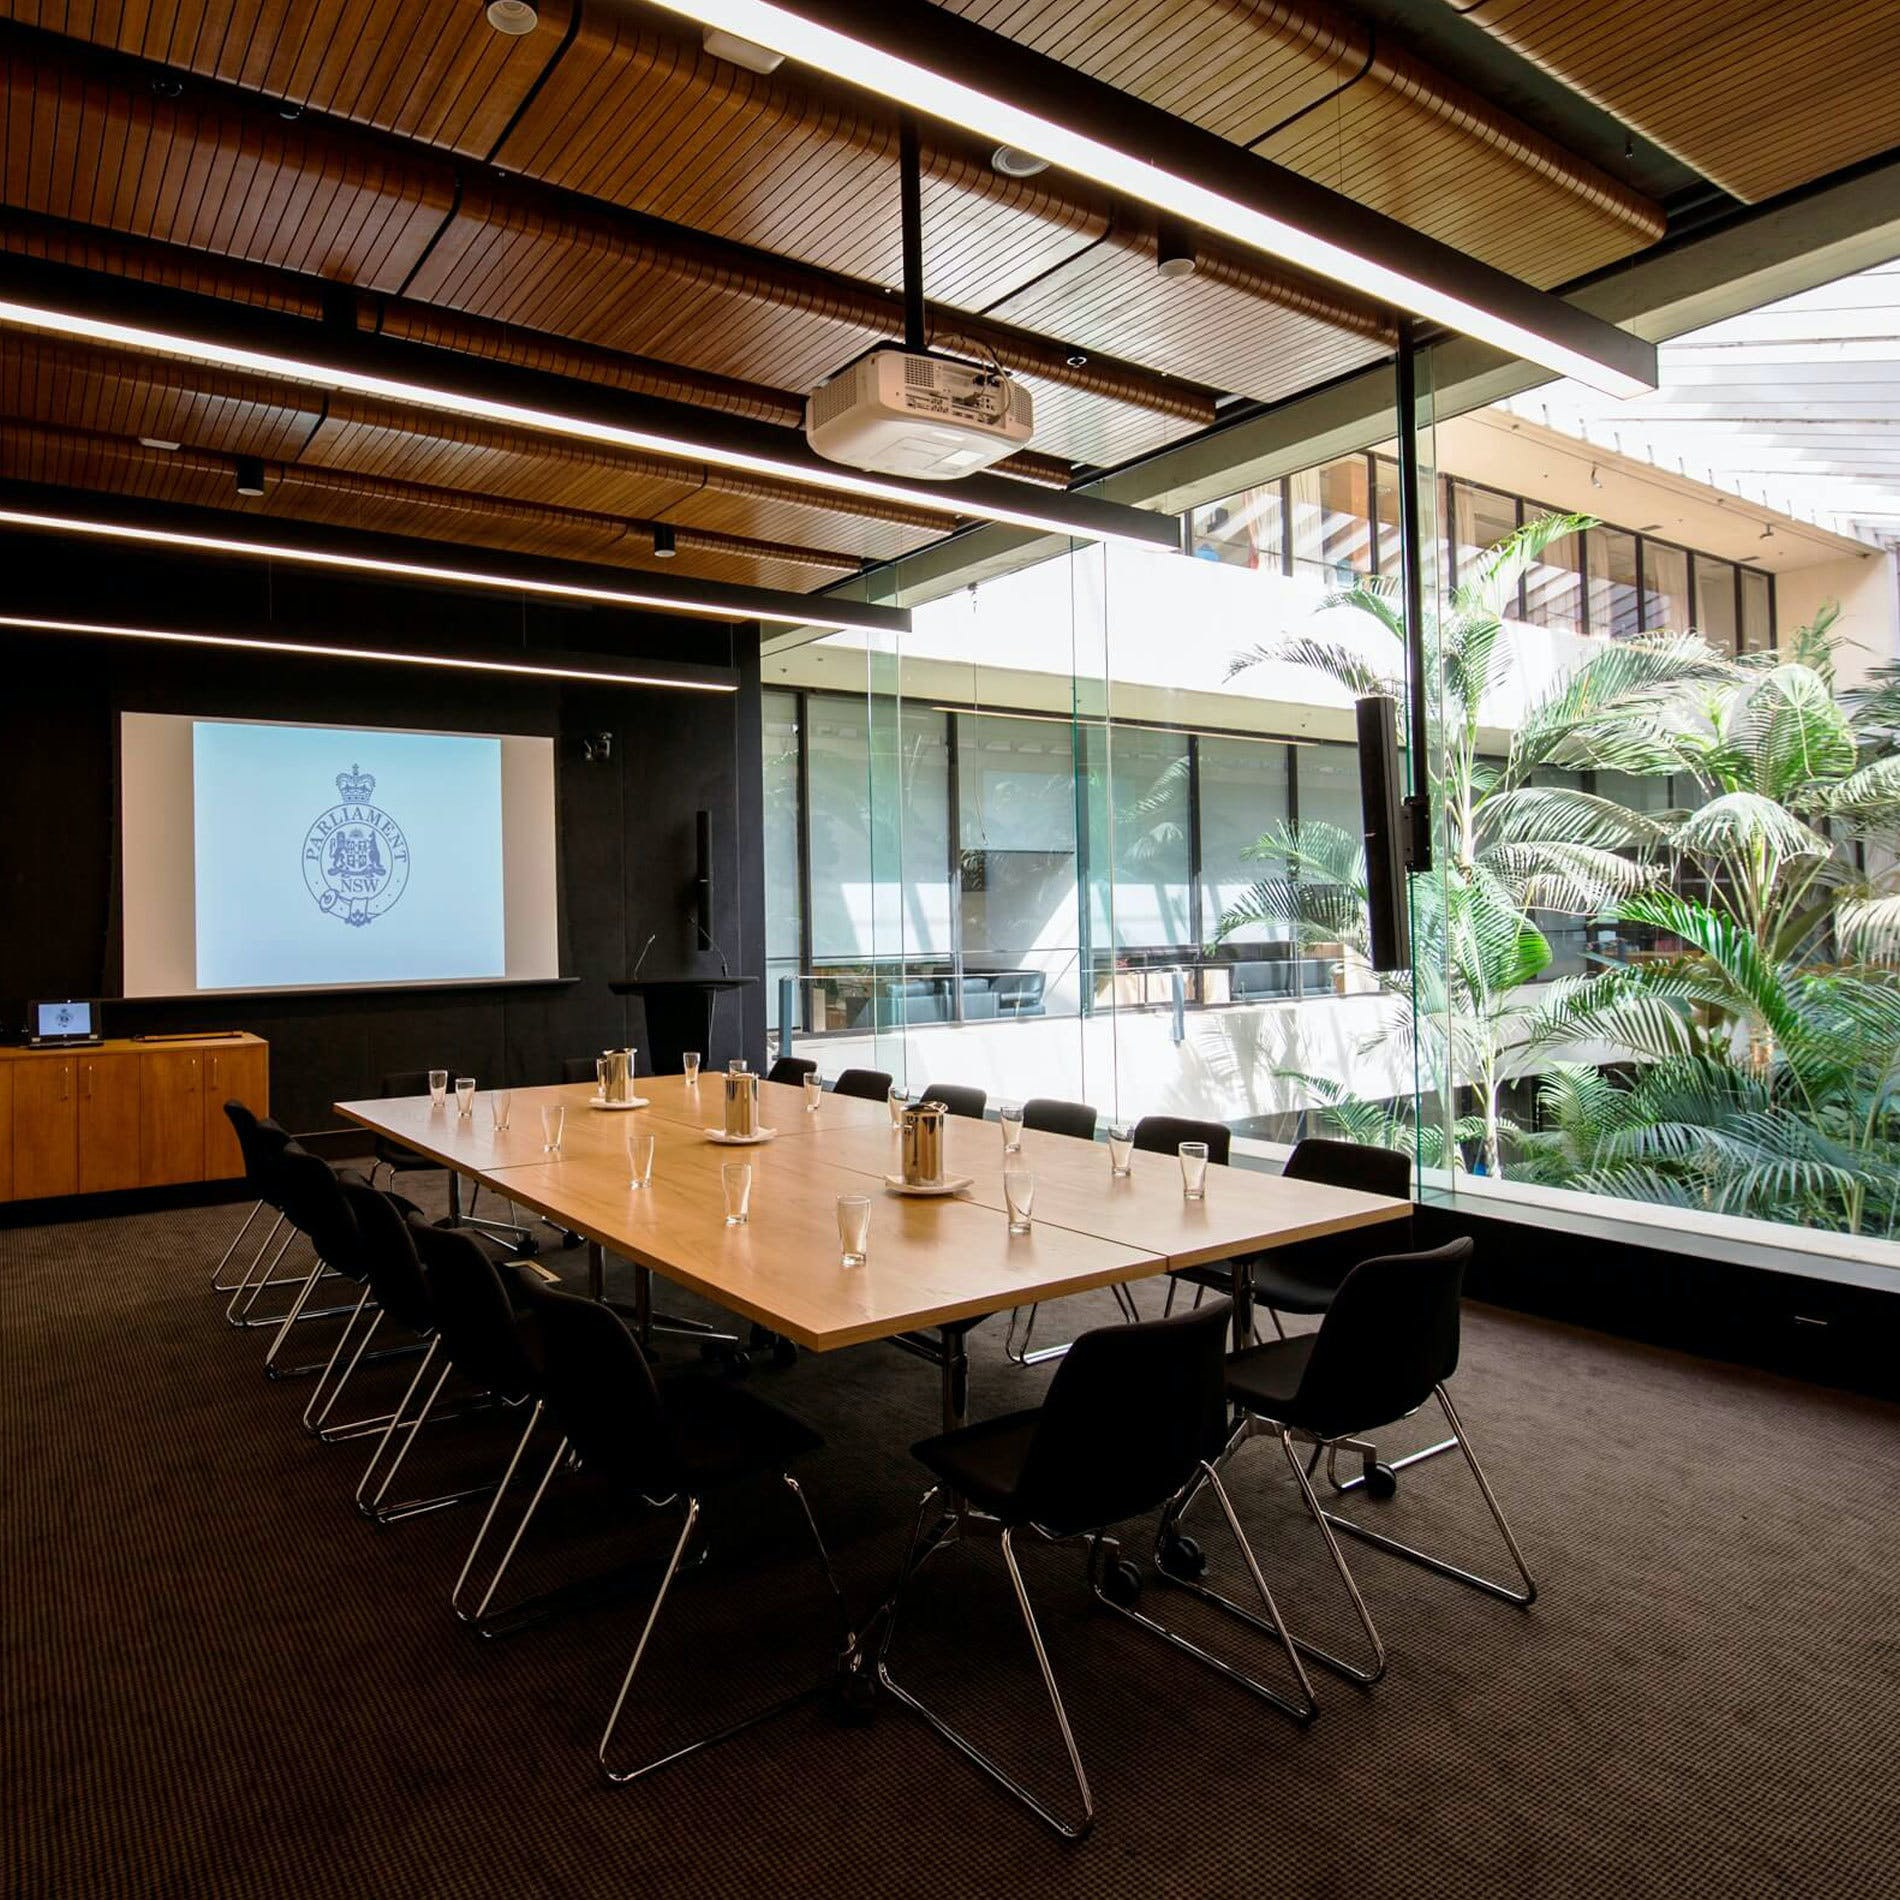 Parliament House of NSW Corporate Meeting Room